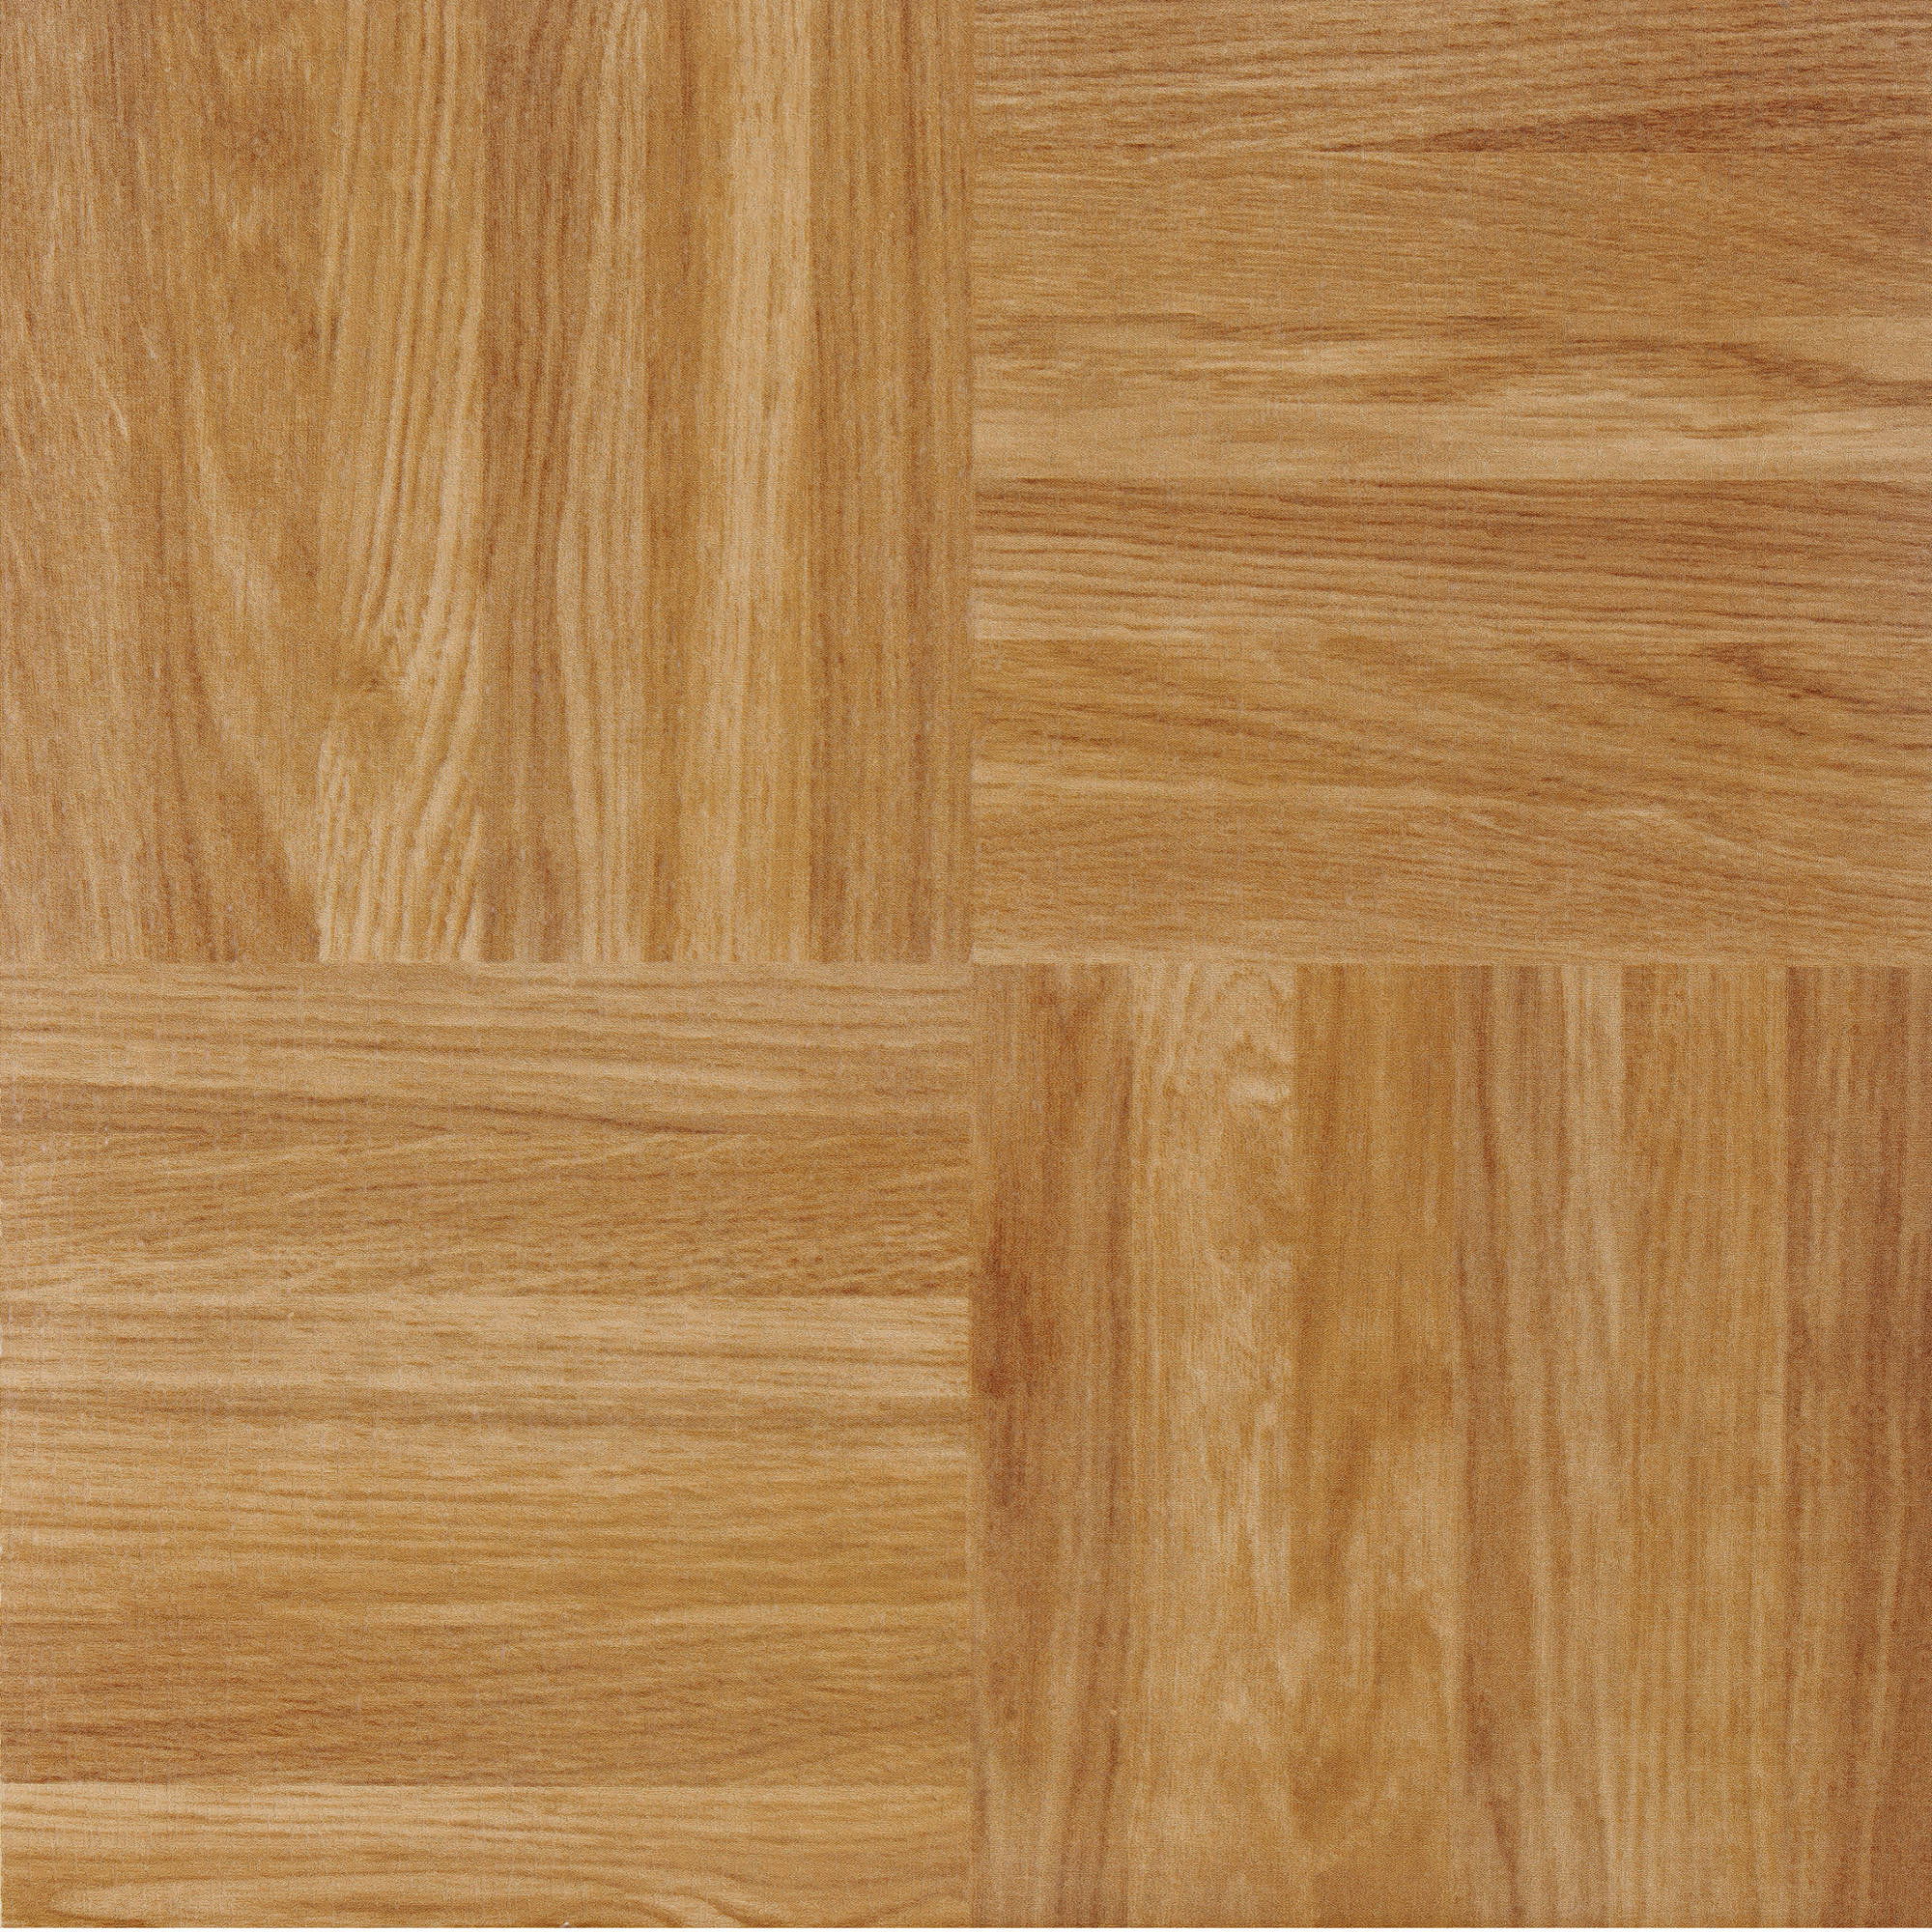 Sterling square parquet 12x12 self adhesive vinyl floor tile 20 sterling square parquet 12x12 self adhesive vinyl floor tile 20 tiles20 sqft walmart dailygadgetfo Image collections